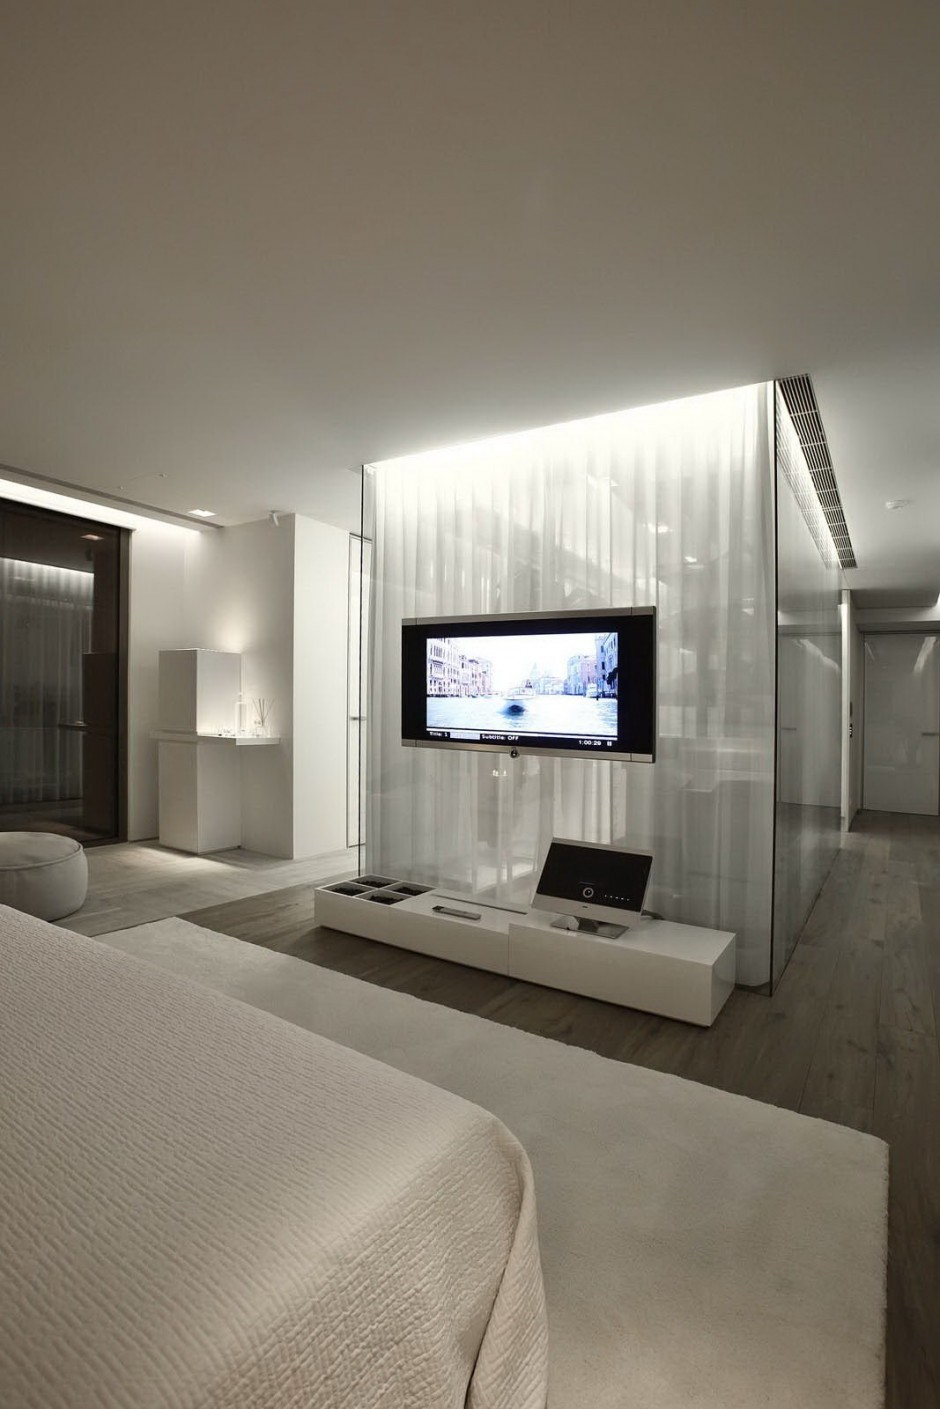 Large Bedroom Television - Bold cosmopolitan house in istanbul